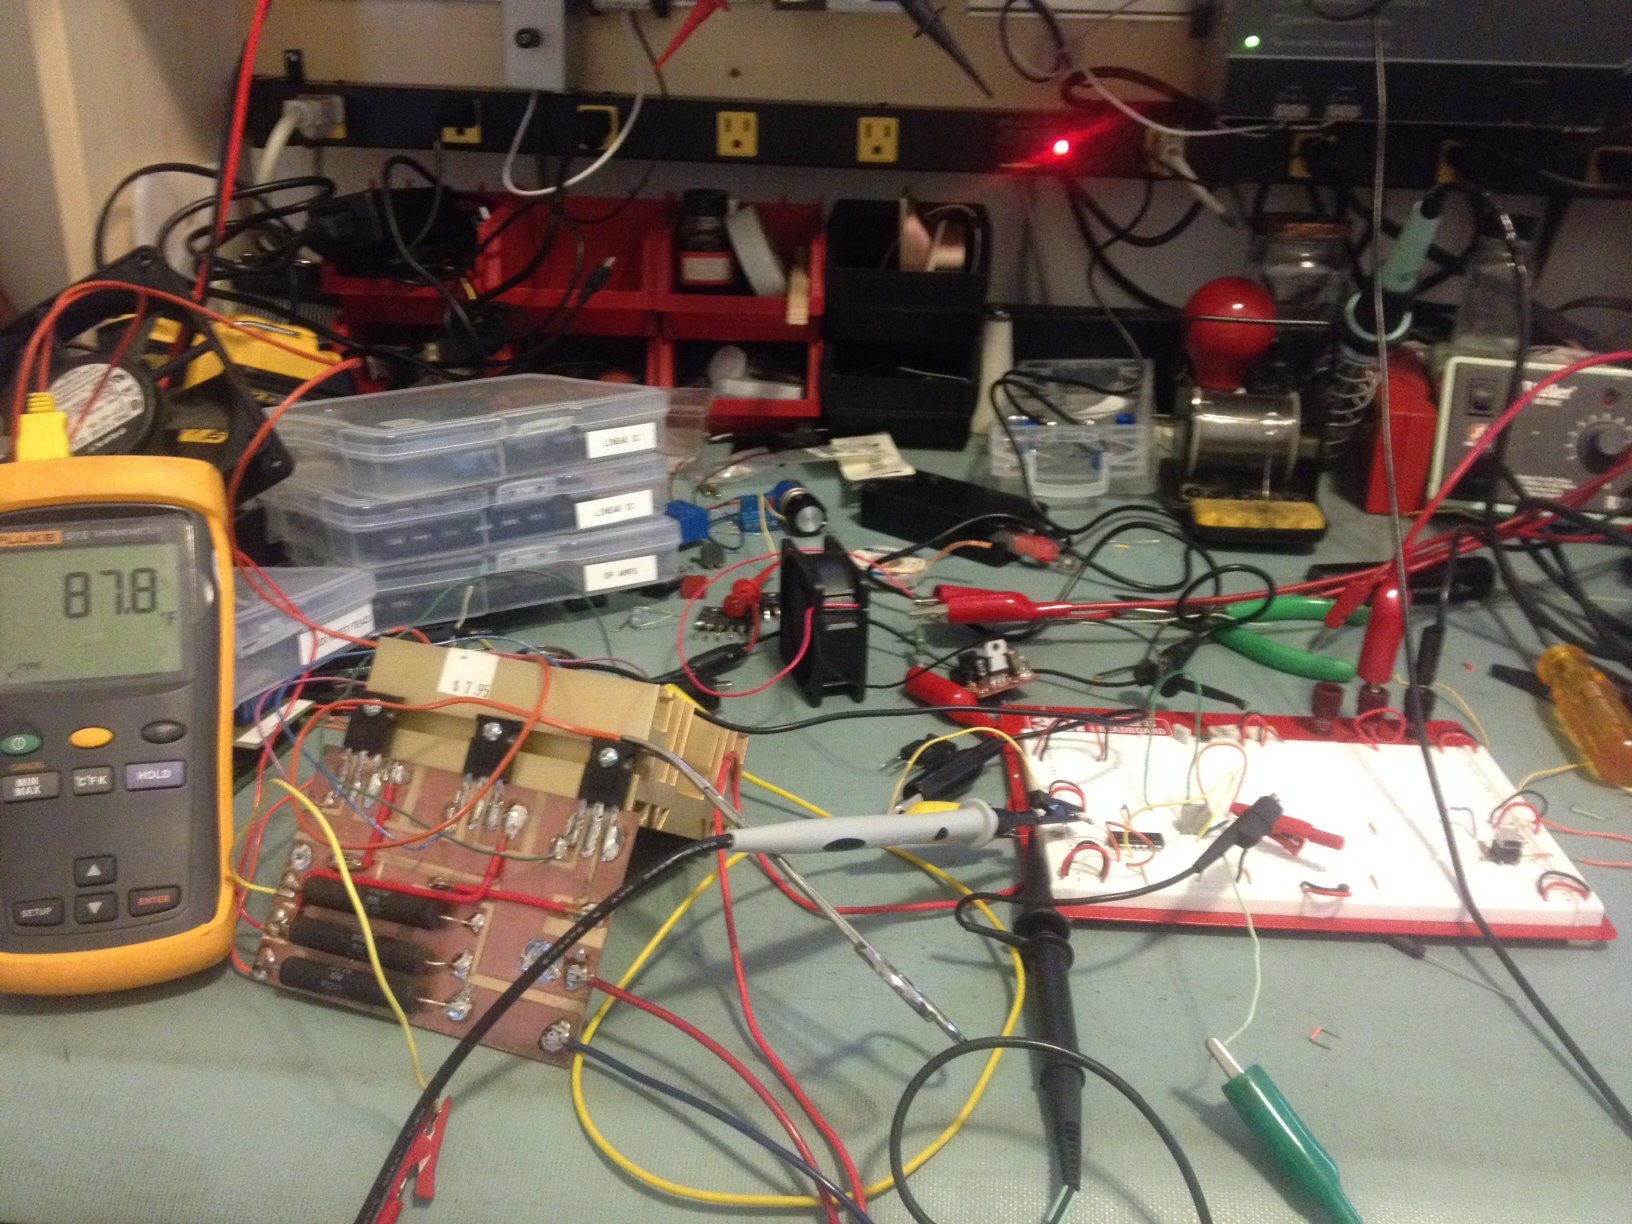 Operational Amplifiers Circuit Continuity Tester Using Opamps Eeweb Community The Meat And Potatoes Of Load Work Fine Note To Self